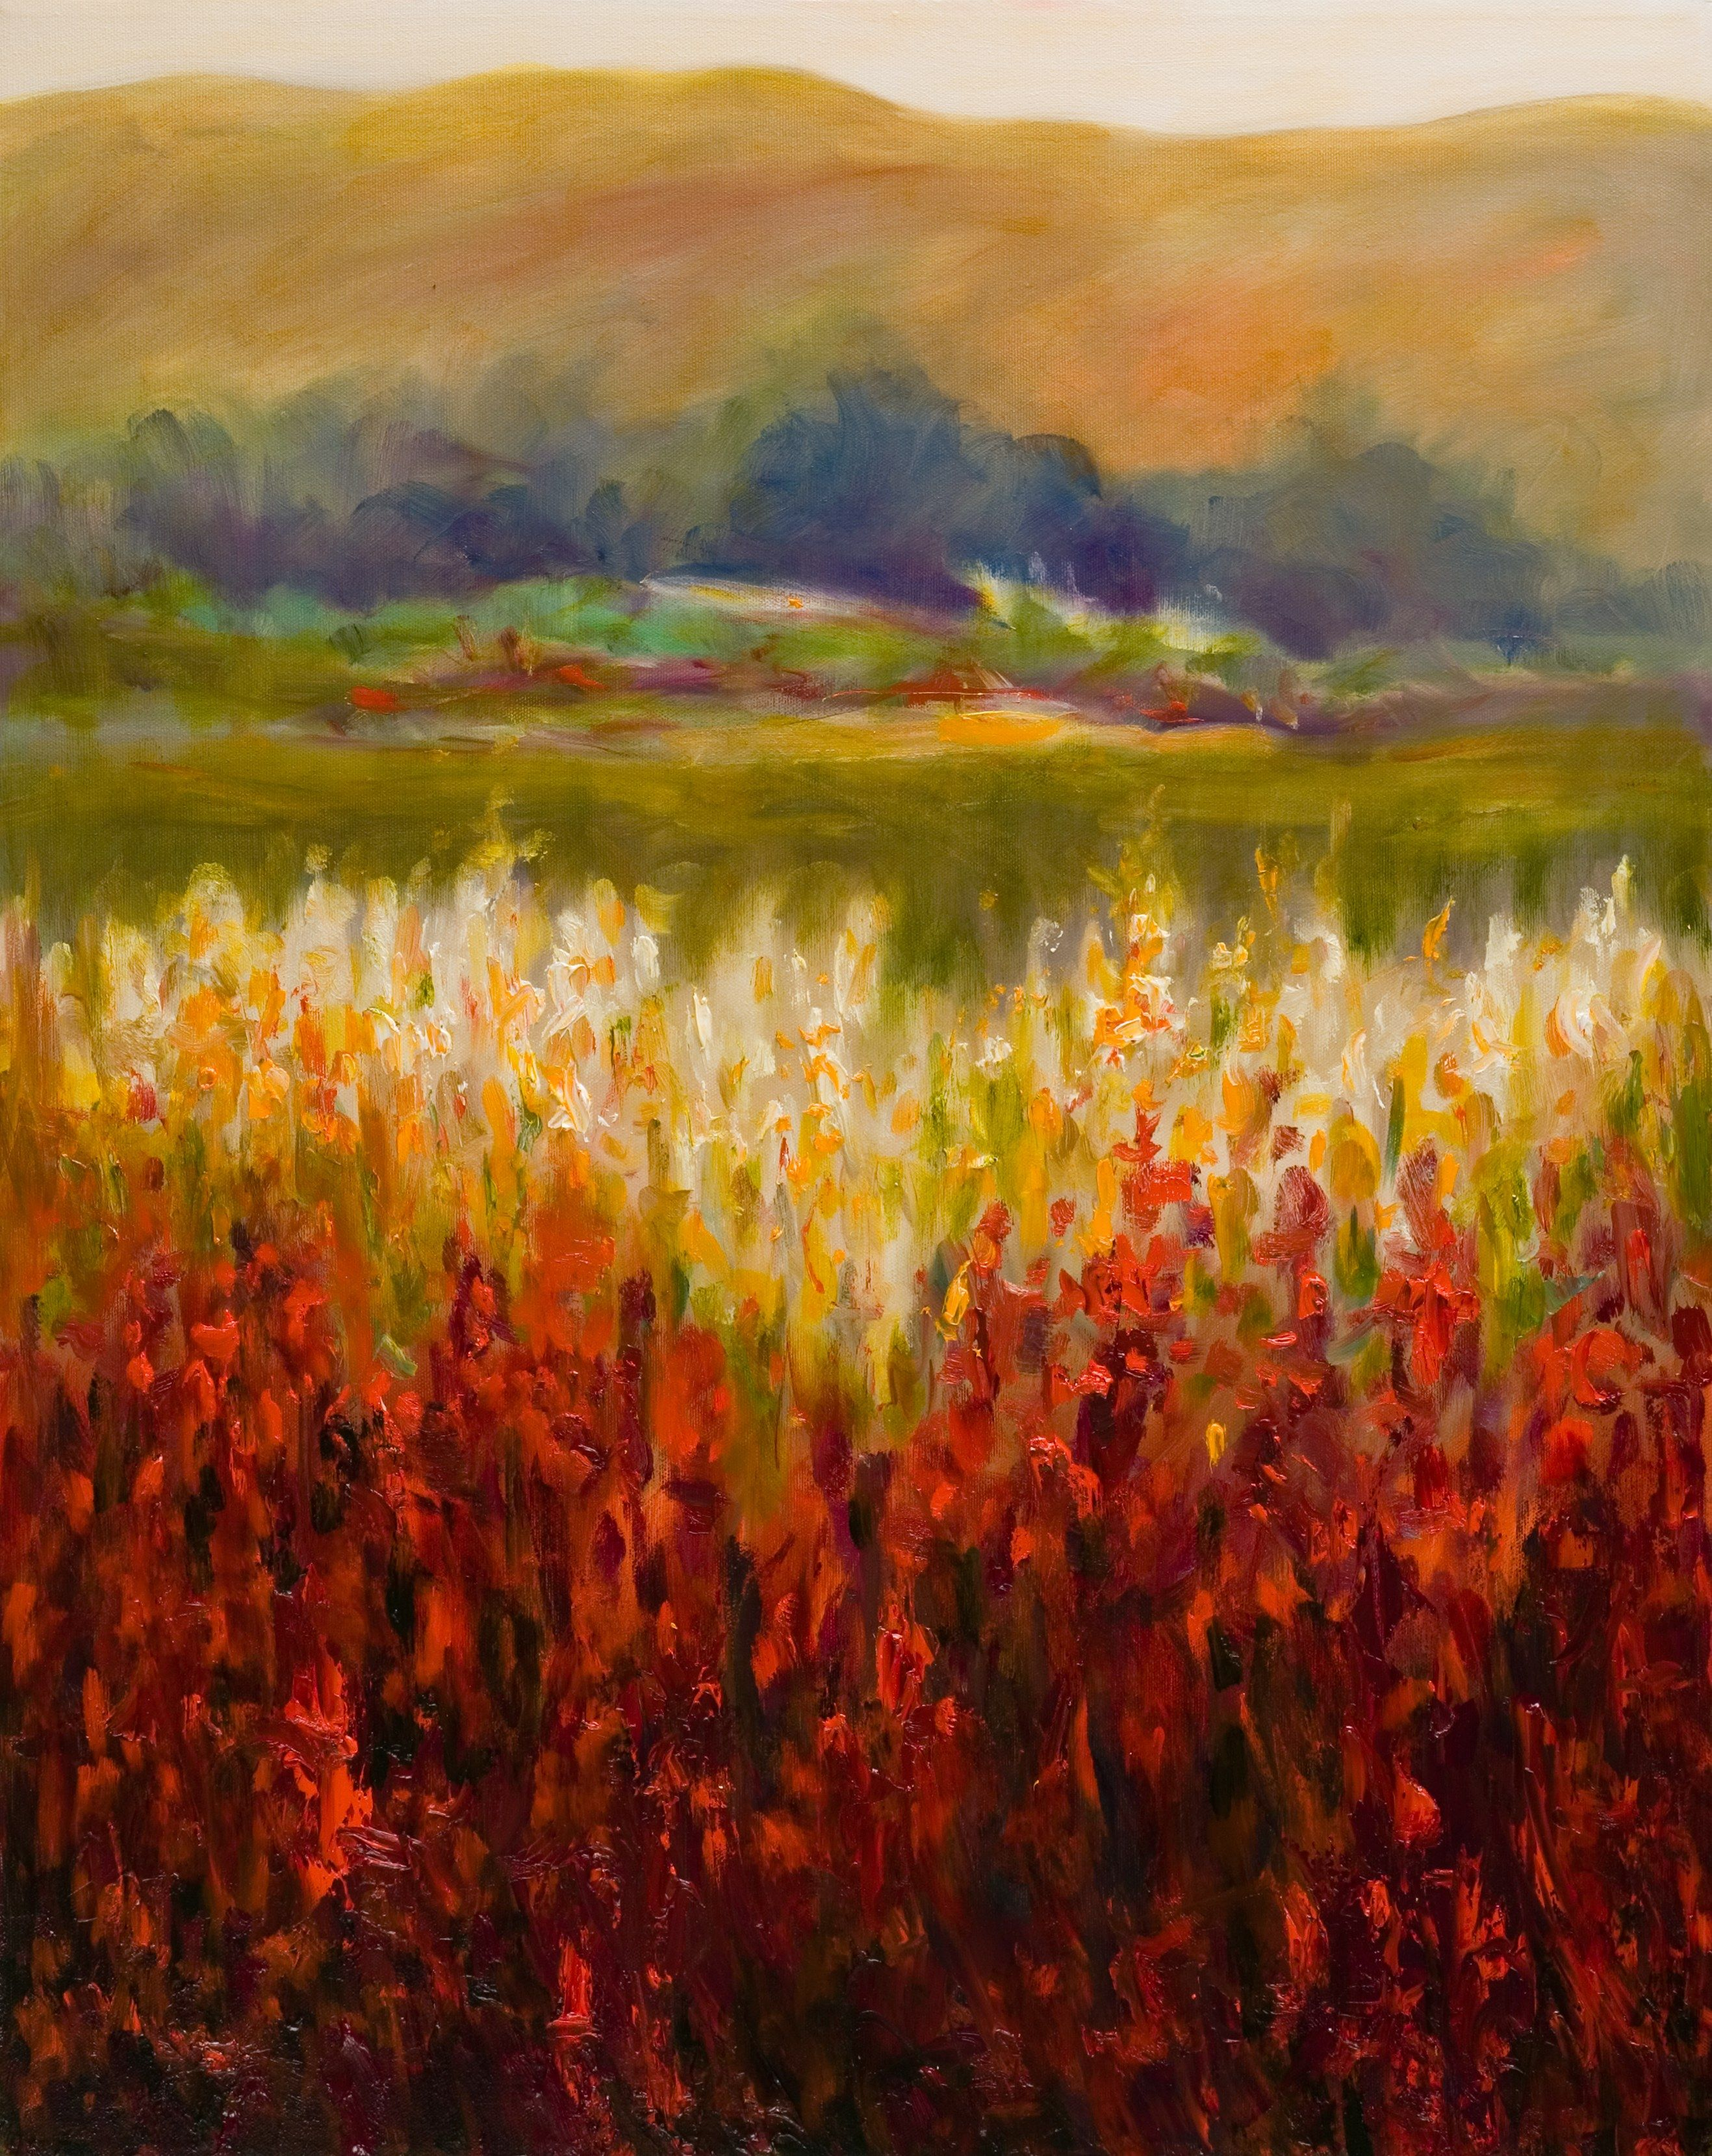 Abstract Landscape Painting Santa Rosa Valley, Oil on Canvas By ...